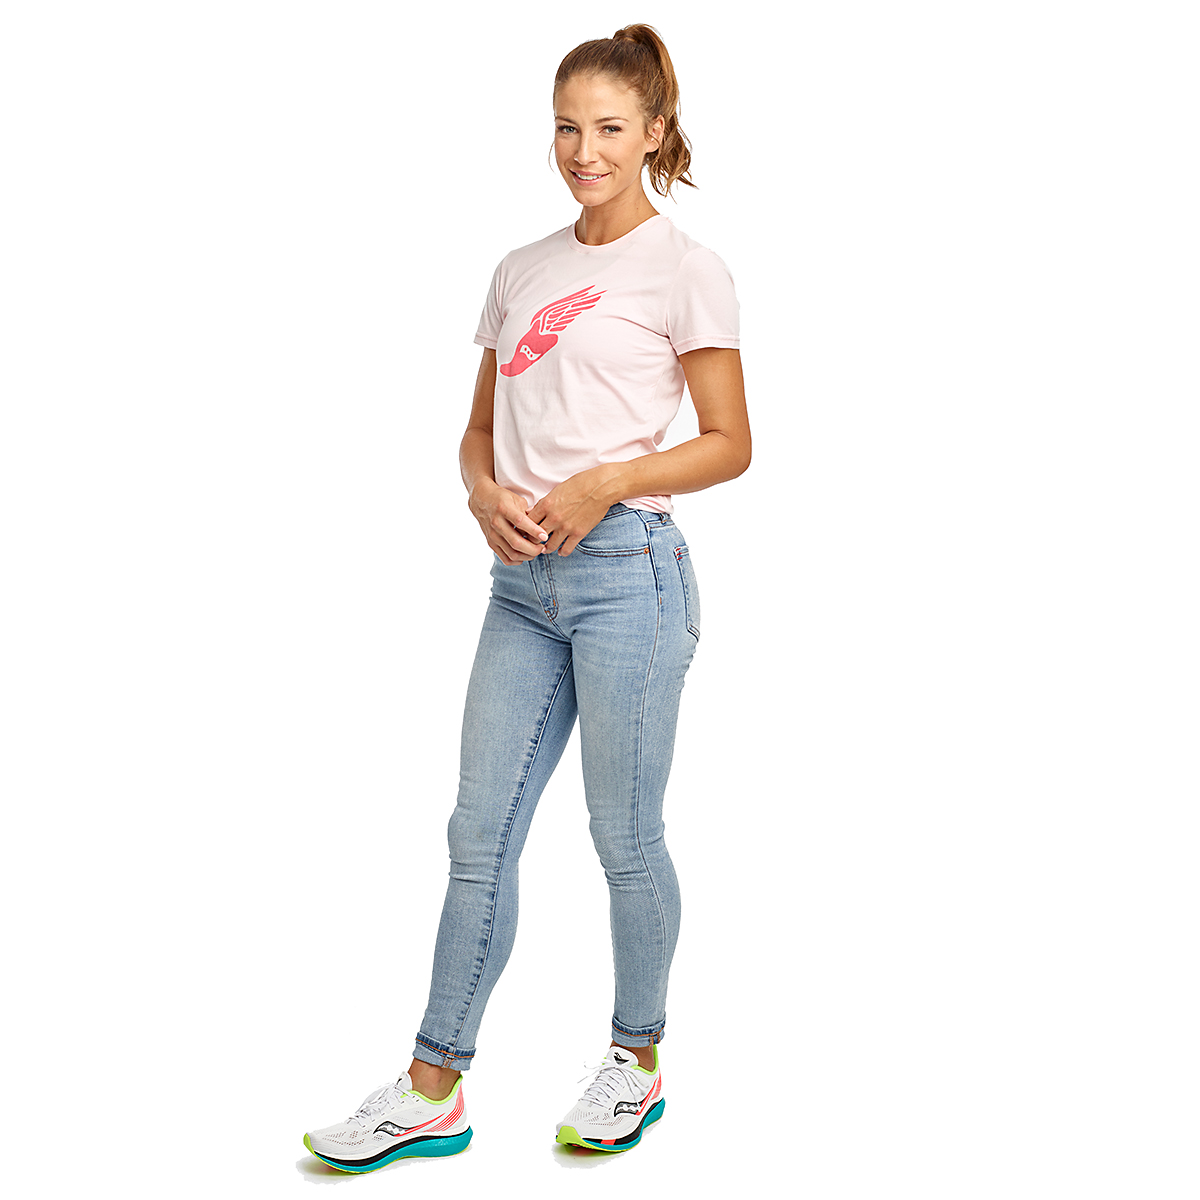 Women's Saucony Rested Short Sleeve - Color: Barely Pink - Size: XXS, Barely Pink, large, image 3